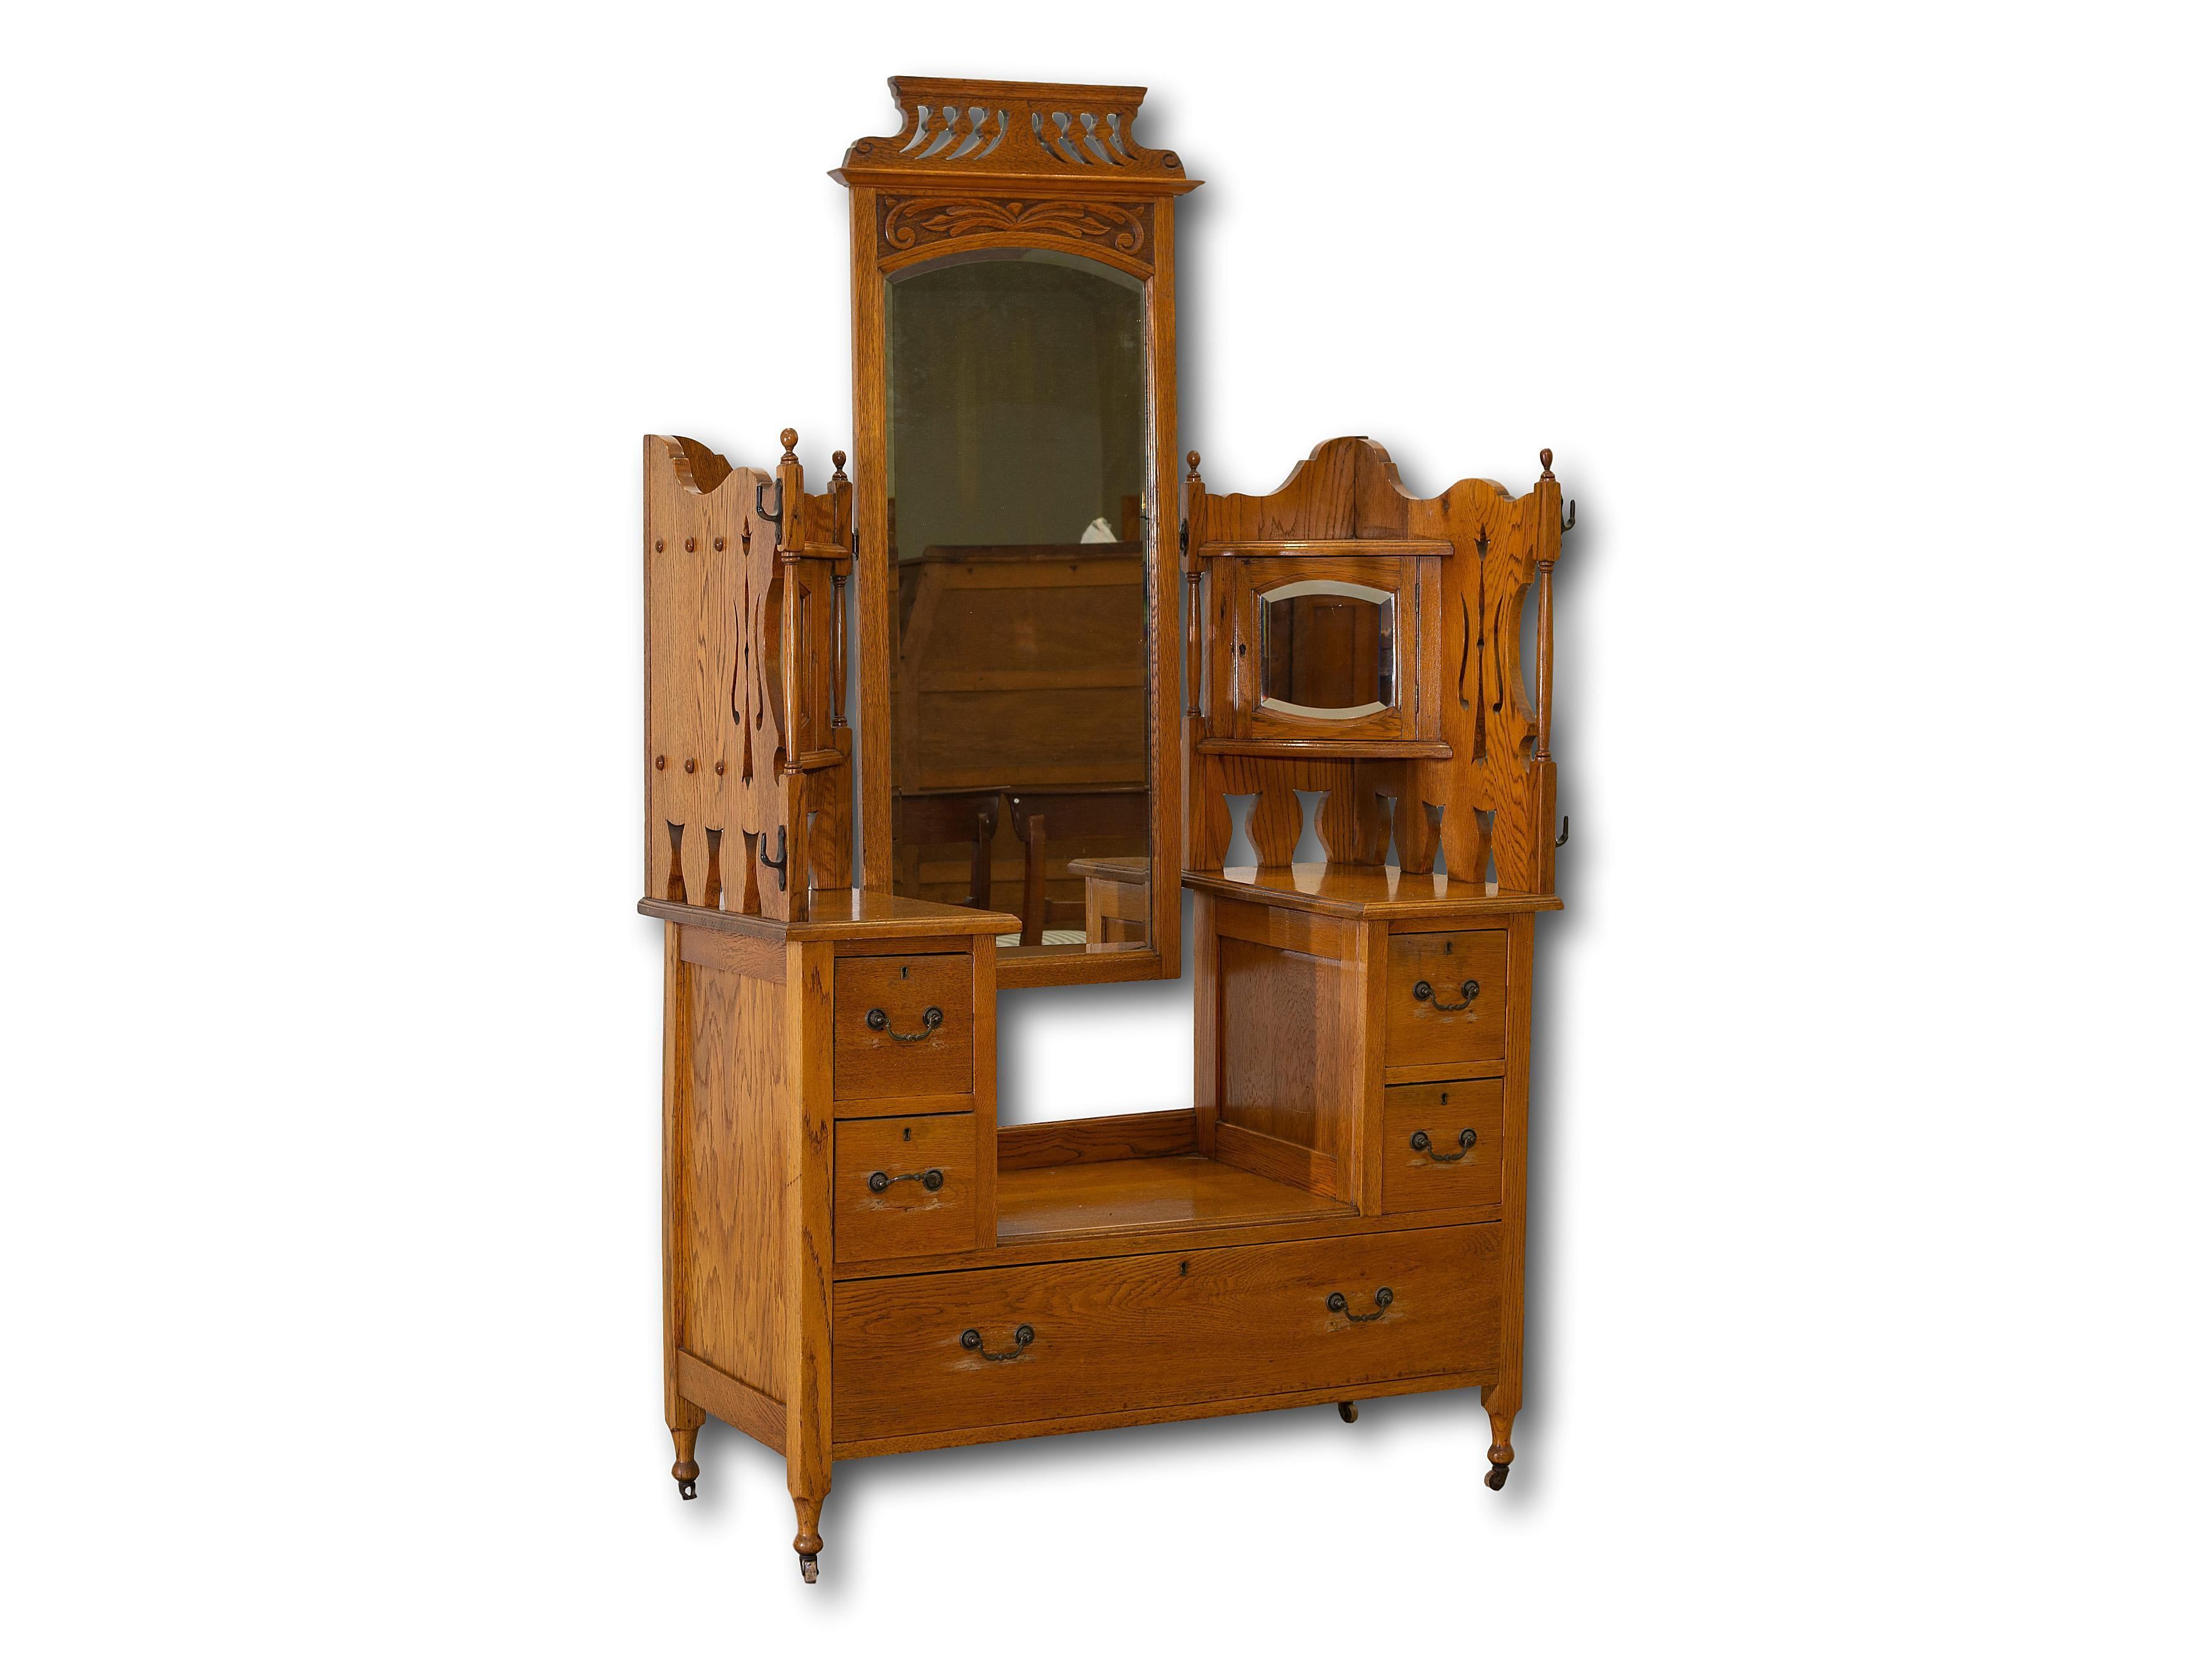 An Early 20th Century Oak Dressing Table with Mirror, 142 x 118 x 51